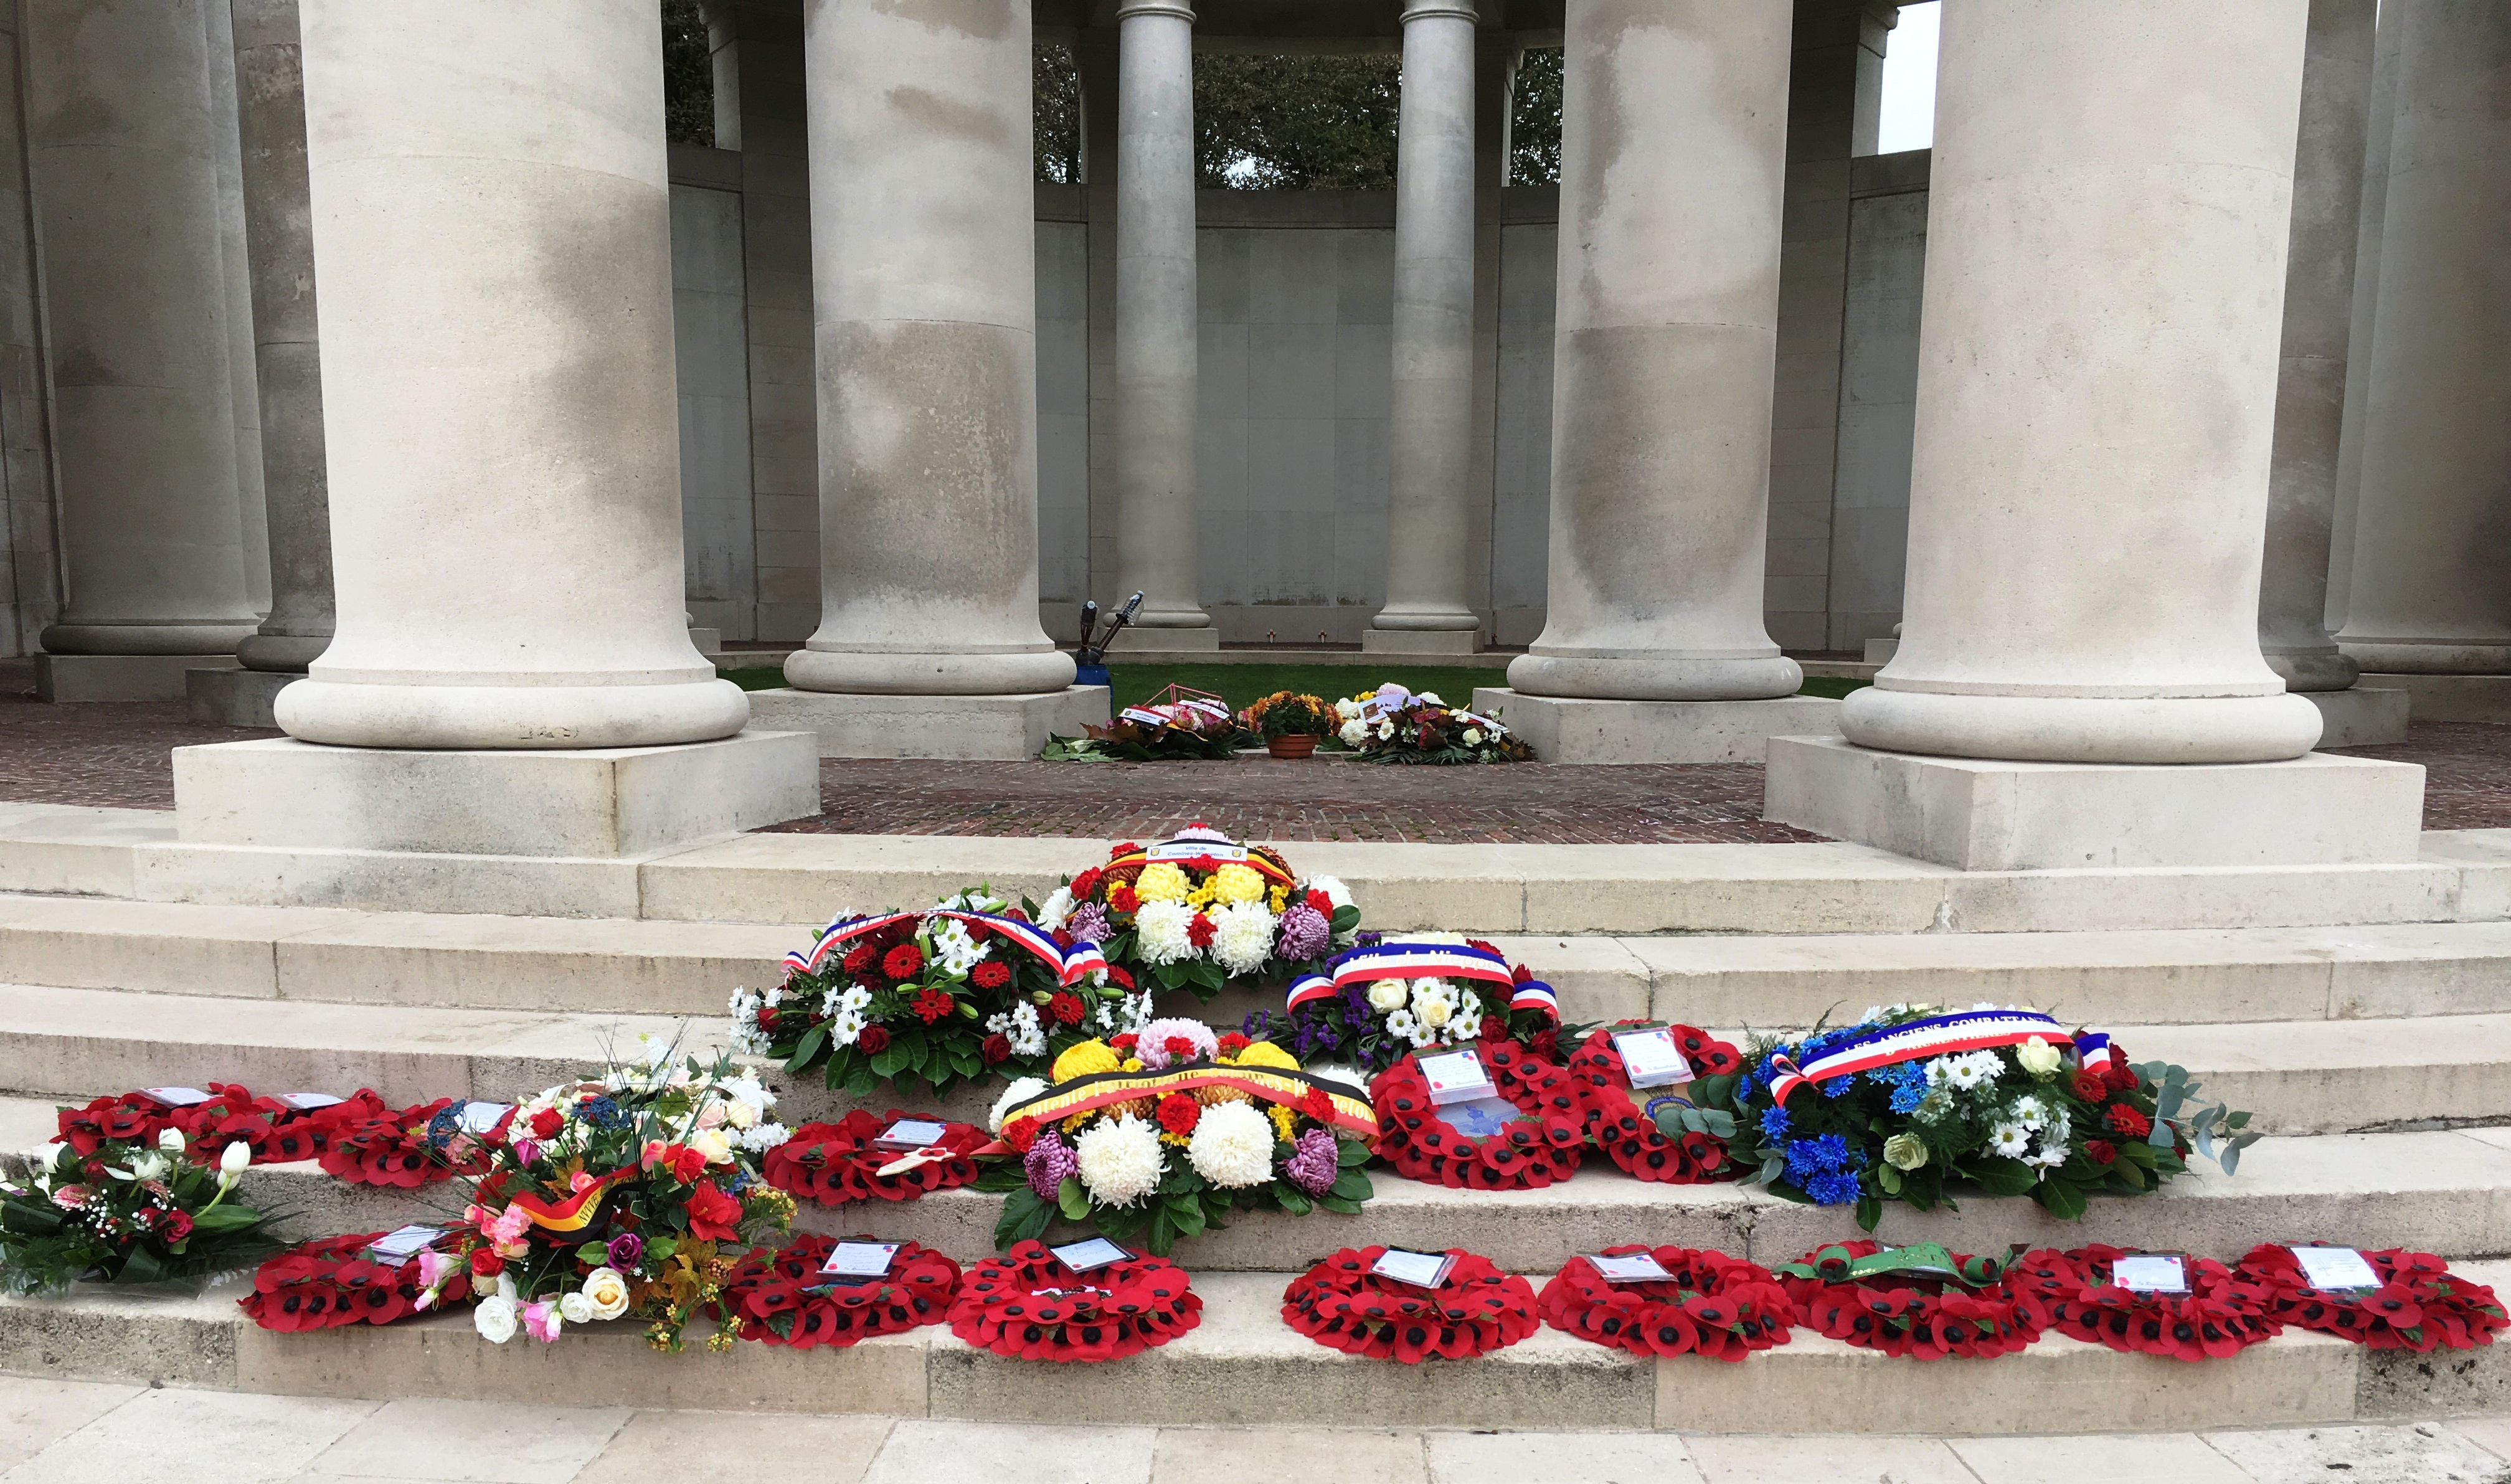 23-wreaths-laid-on-armistice-day-at-plugstreet-memorial-ypres-salient